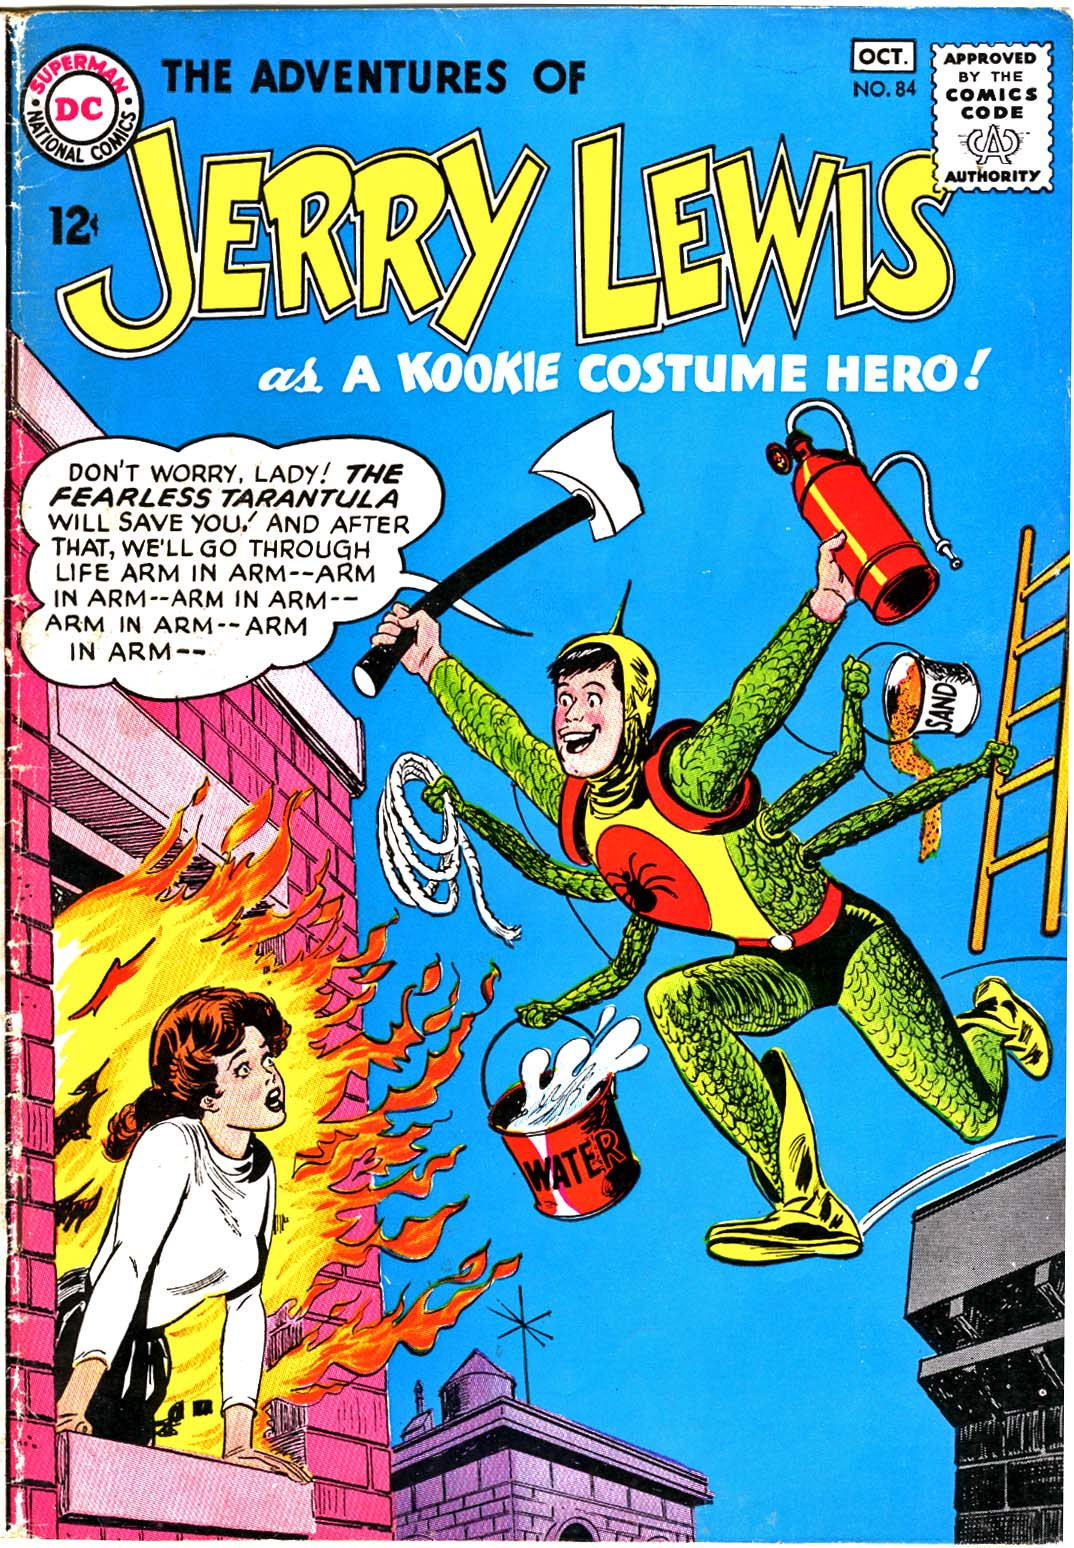 The Adventures of Jerry Lewis issue 84 - Page 1